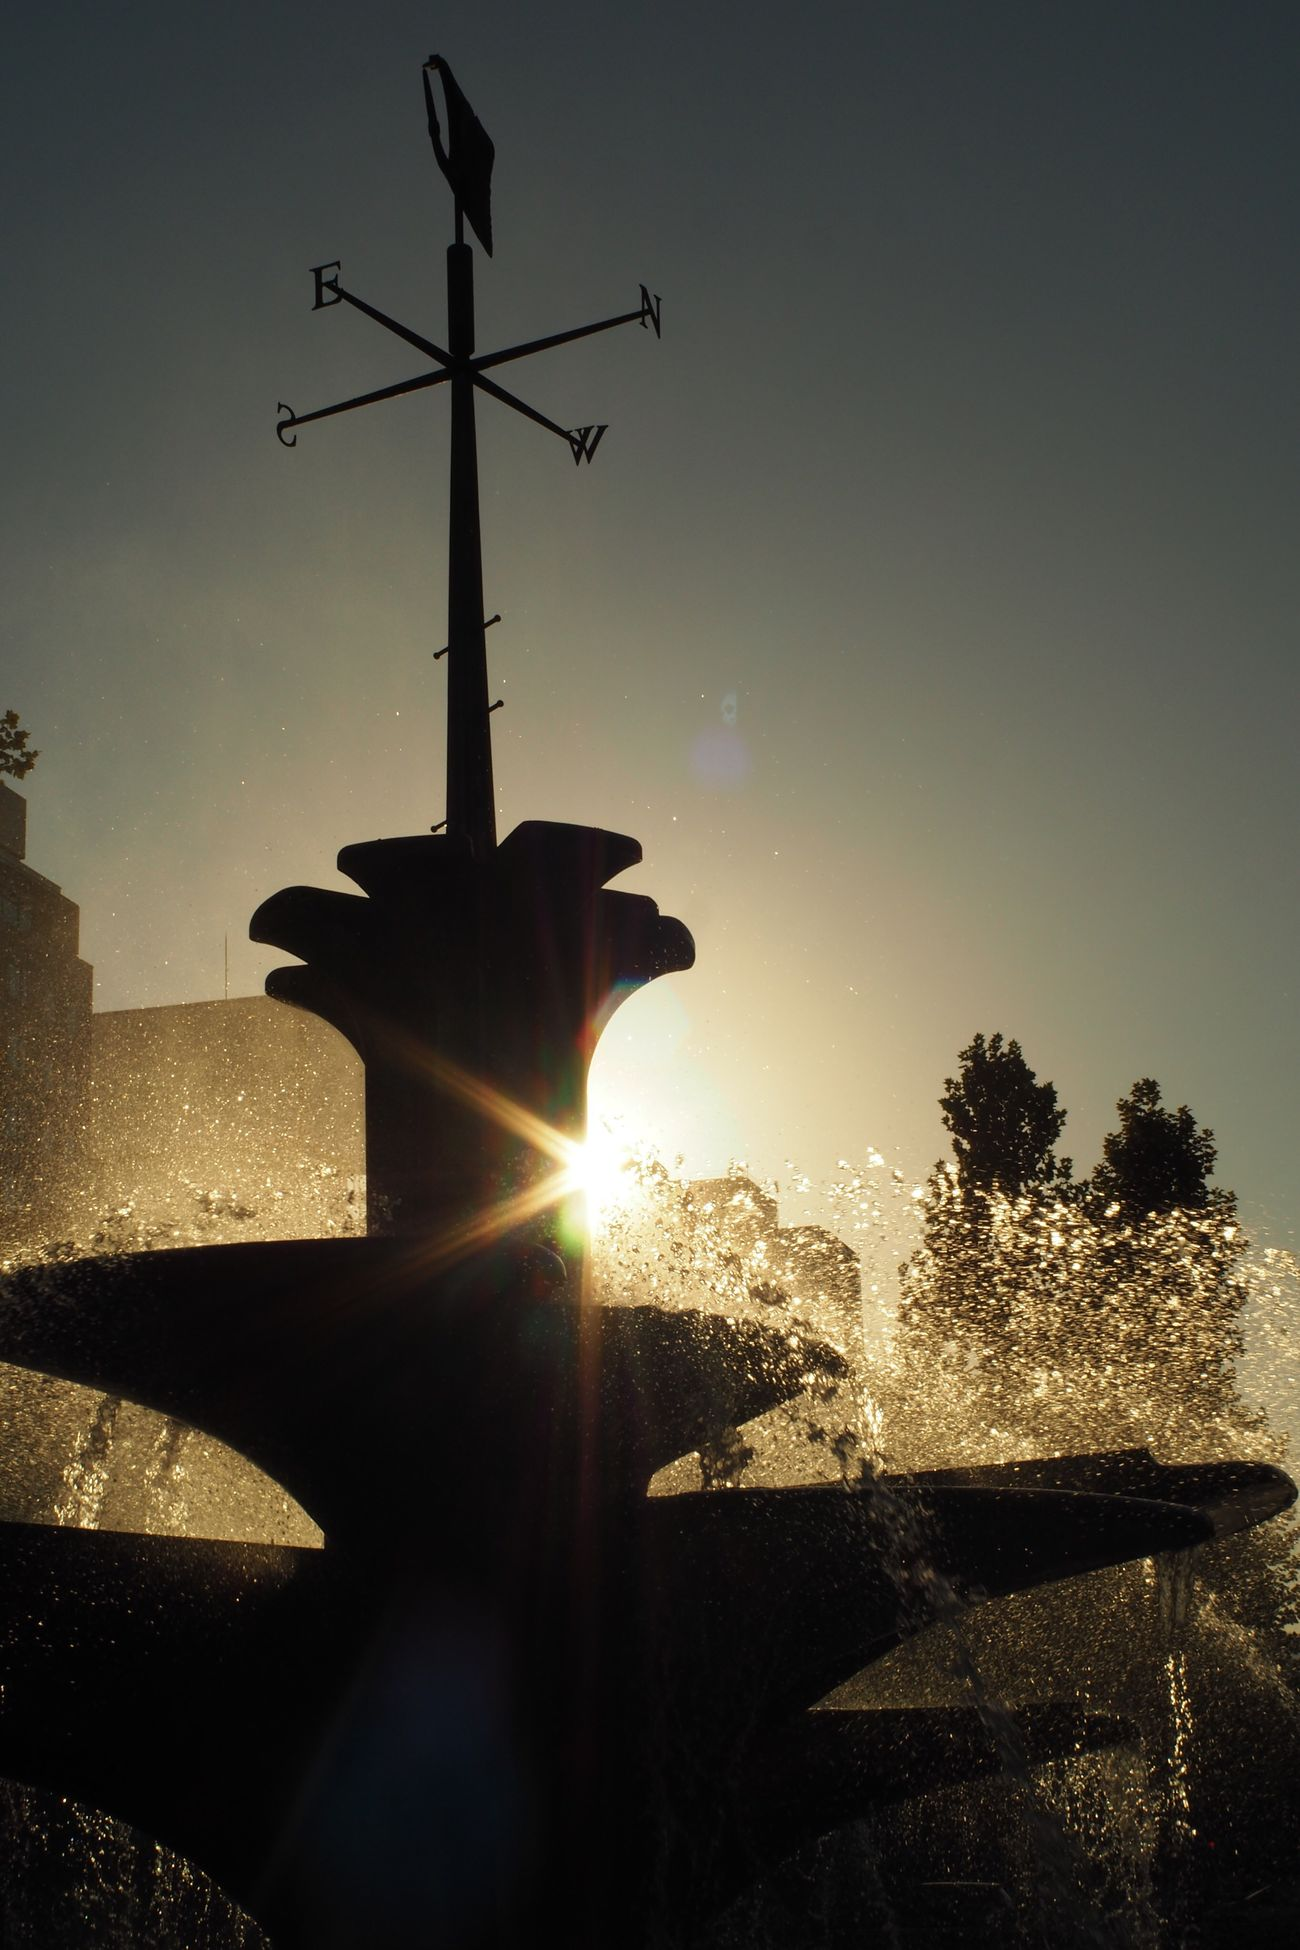 Sunlight Fountain Sunbeam Silhouette Sapporo Odori Park Direction